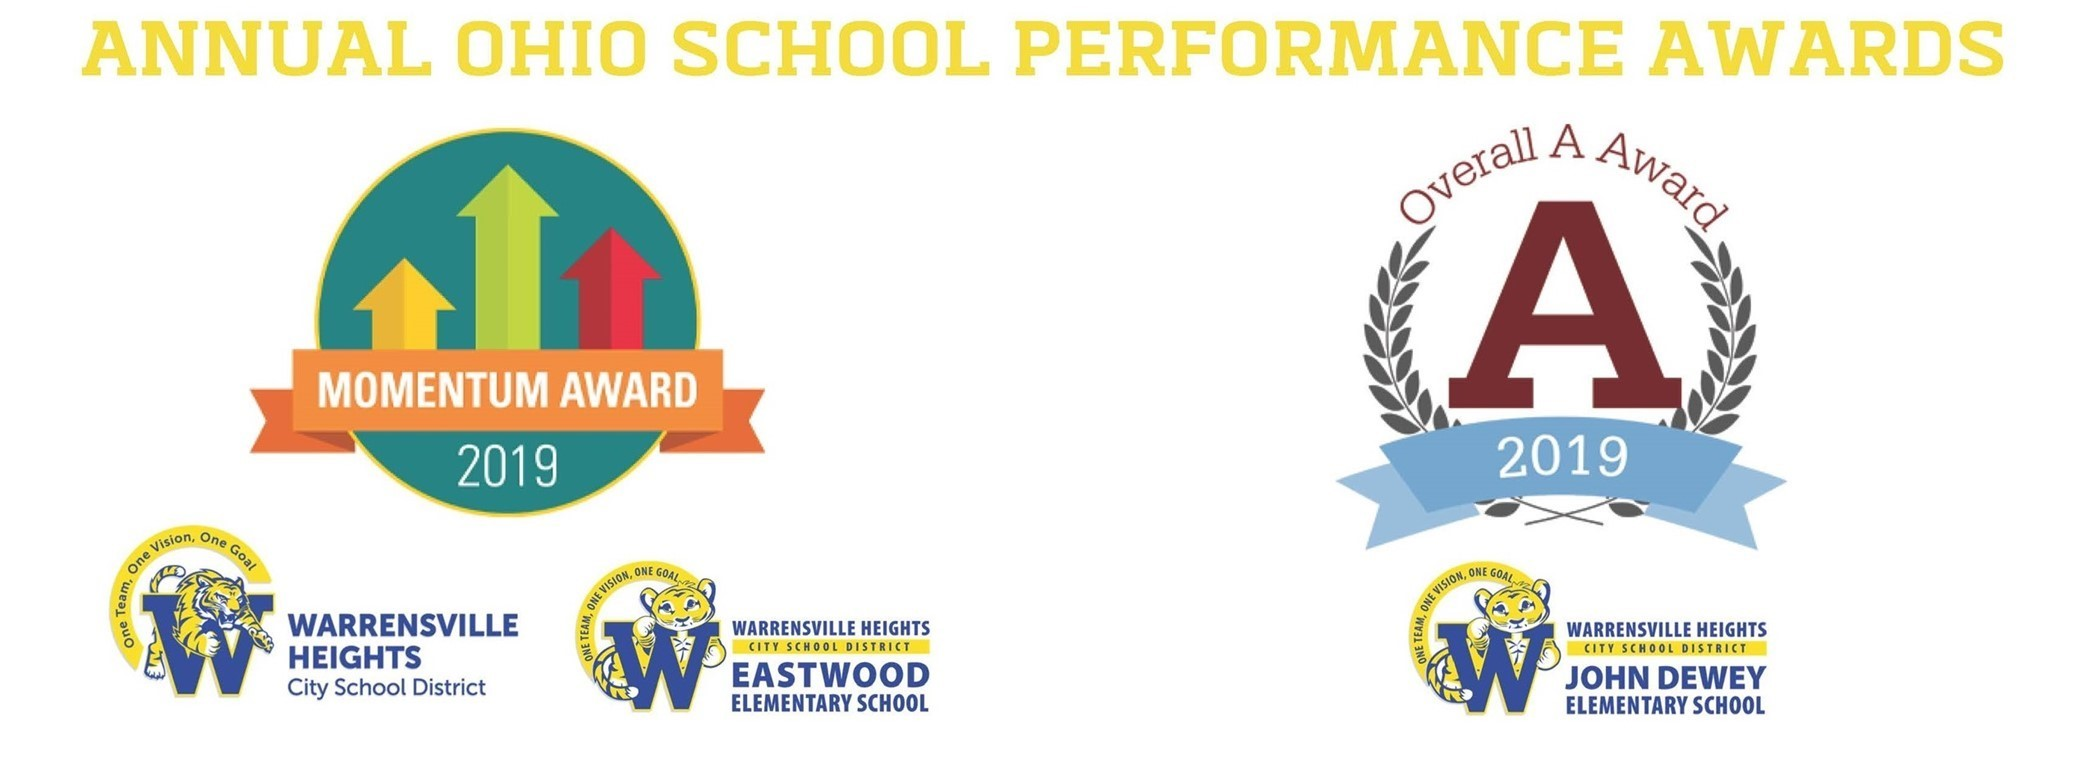 District receives Ohio School Performance Awards